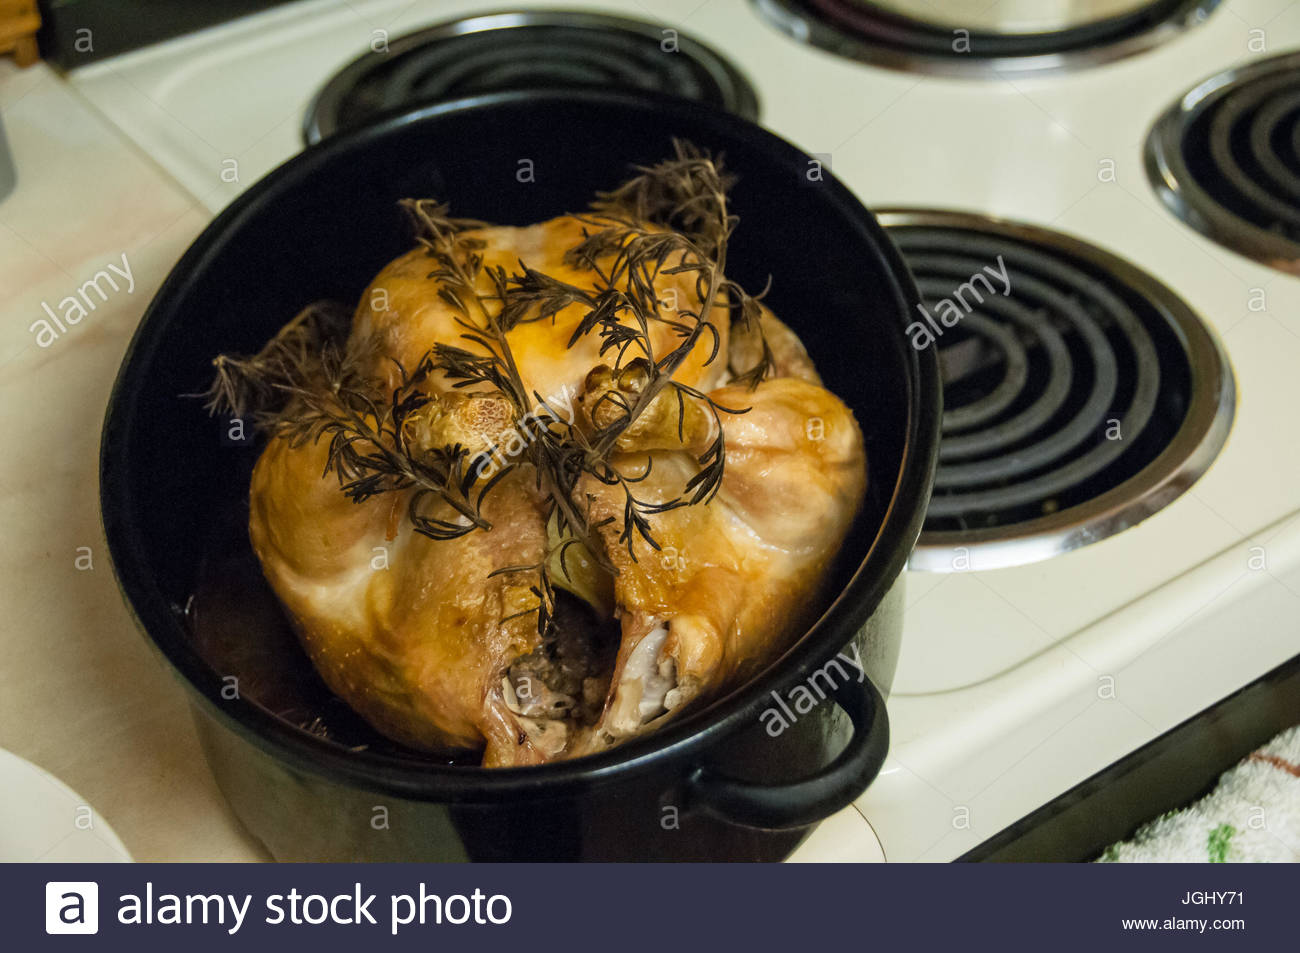 Chicken roasted with rosemary fresh out of the oven. Home cooked. Stock Photo